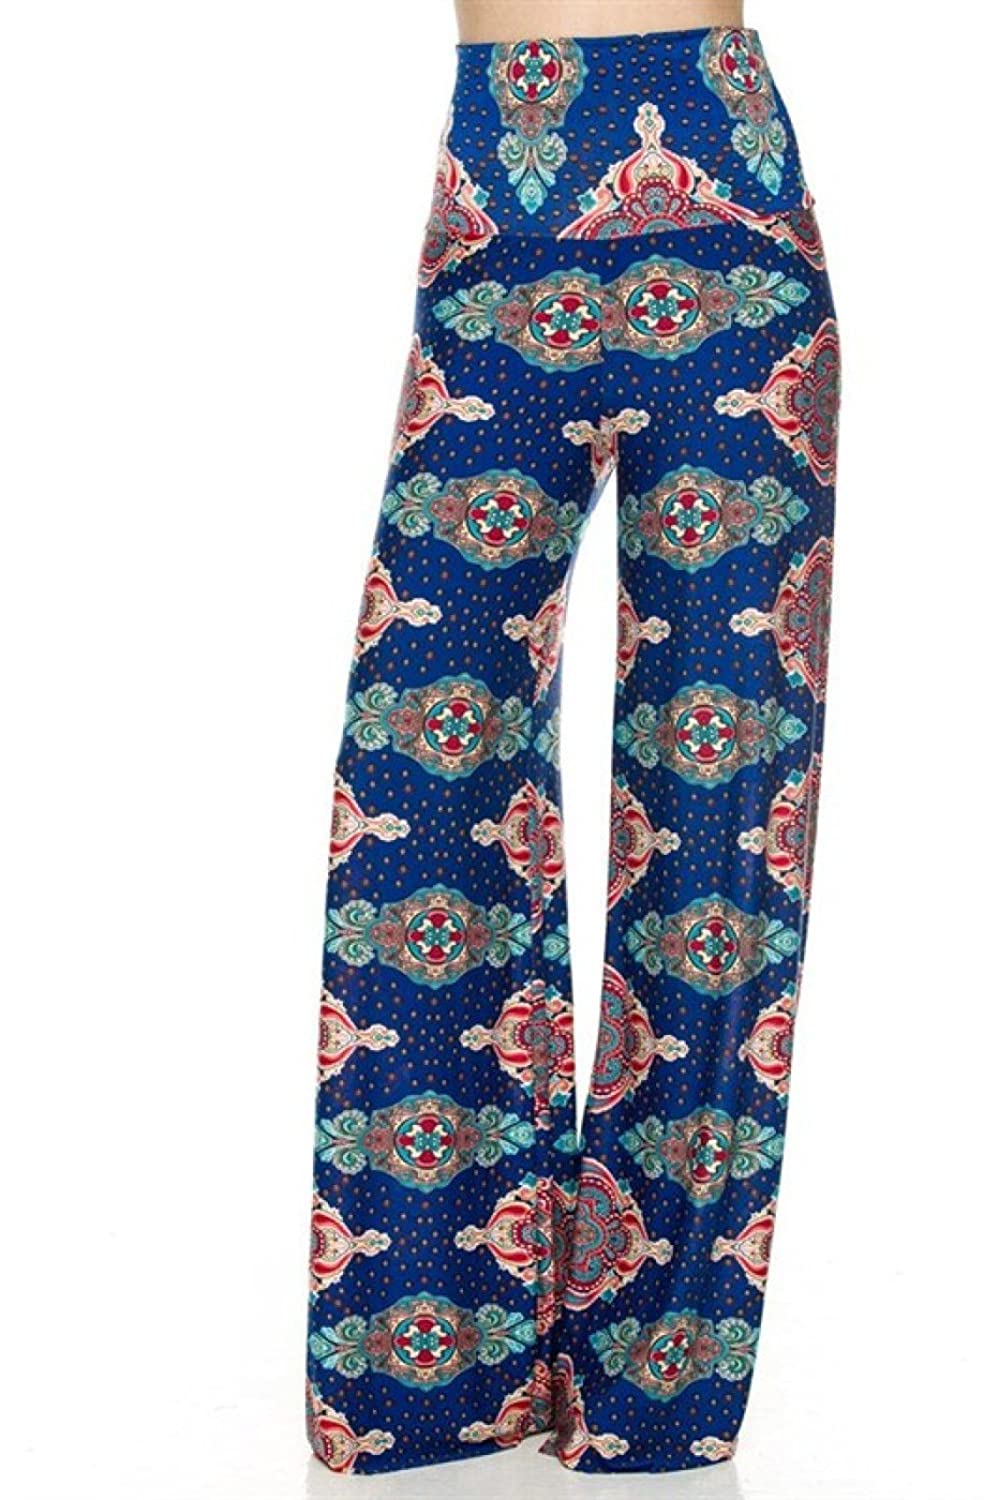 2LUV Women's Multicolored High Waisted Wide Leg Palazzo Pants